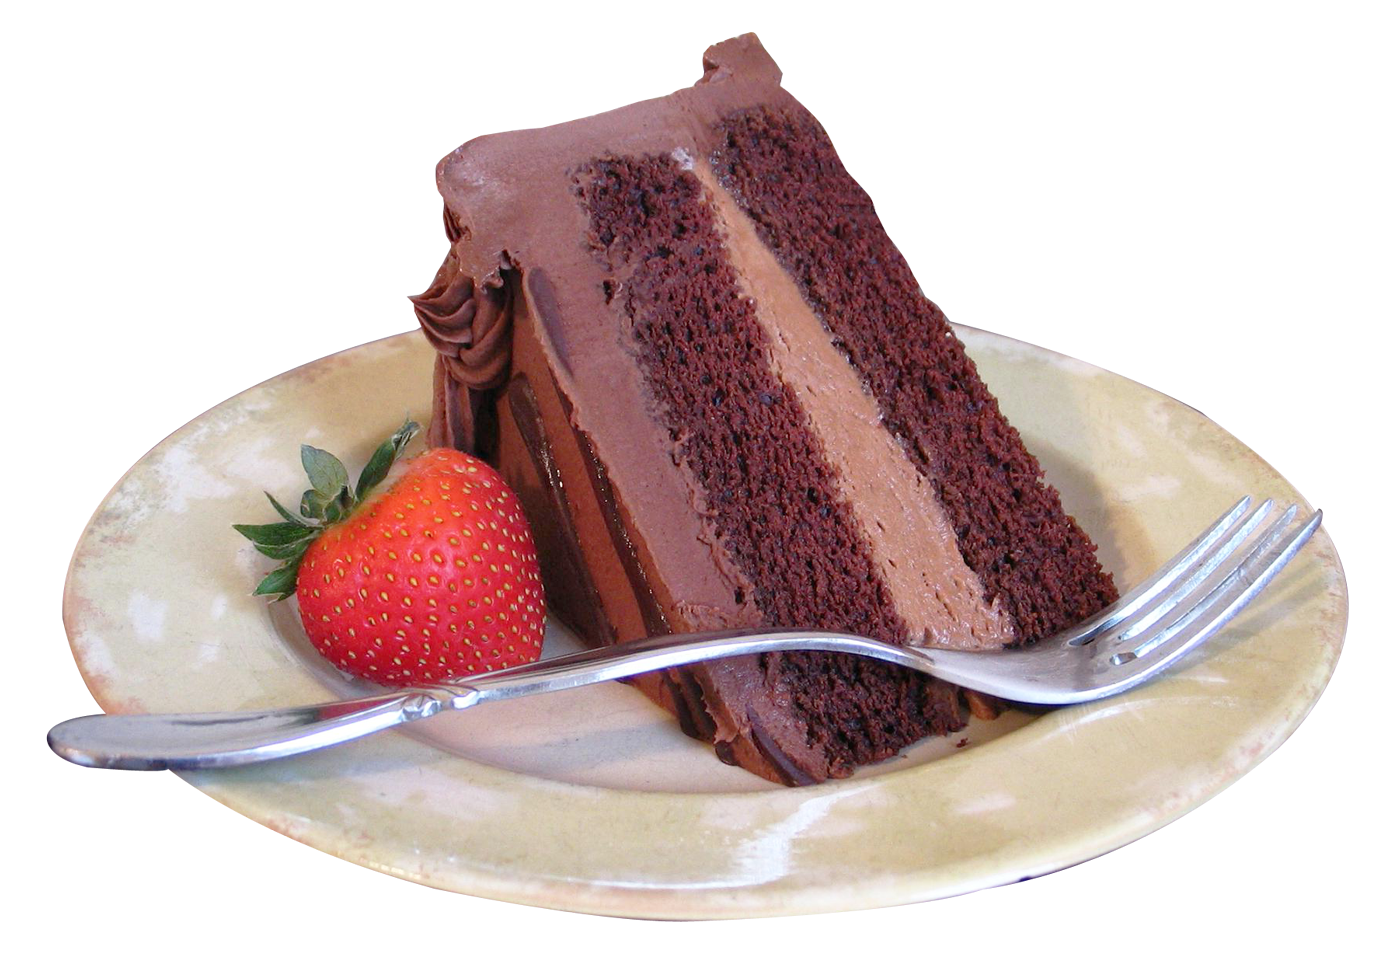 Piece Of Birthday Cake Png